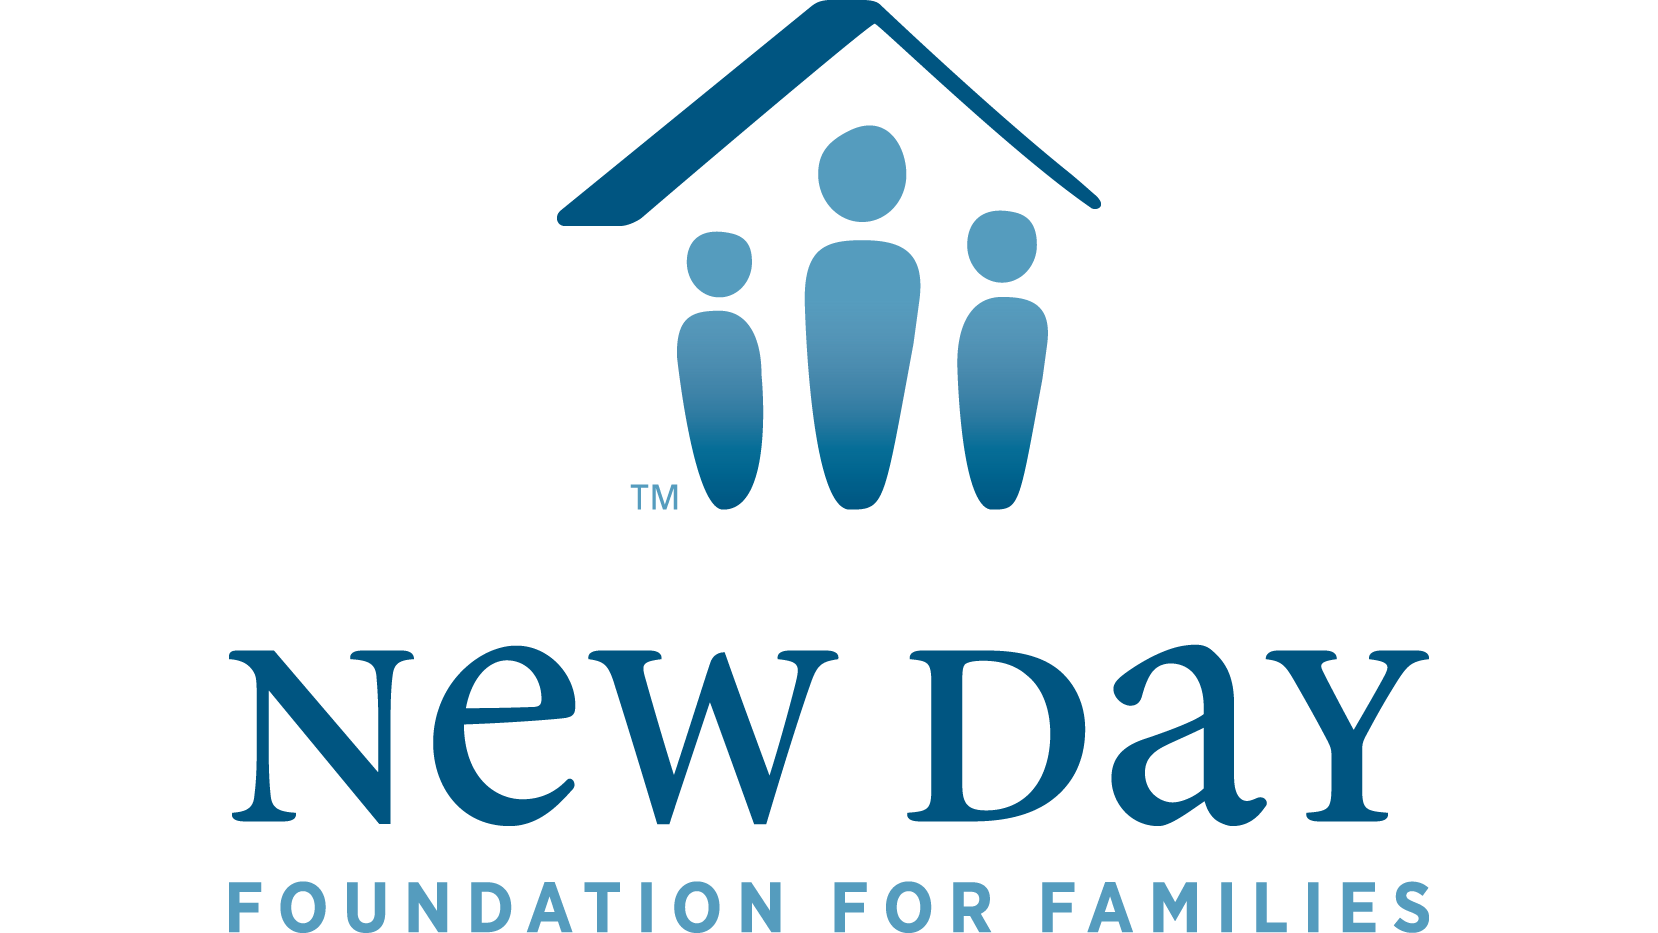 New Day Foundation for Families - Offering financial assistance and emotional support programs to cancer patients and their families. New Day has a positive impact on treatment outcomes by reducing the catastrophic effects of financial toxicity caused by a cancer diagnosis.